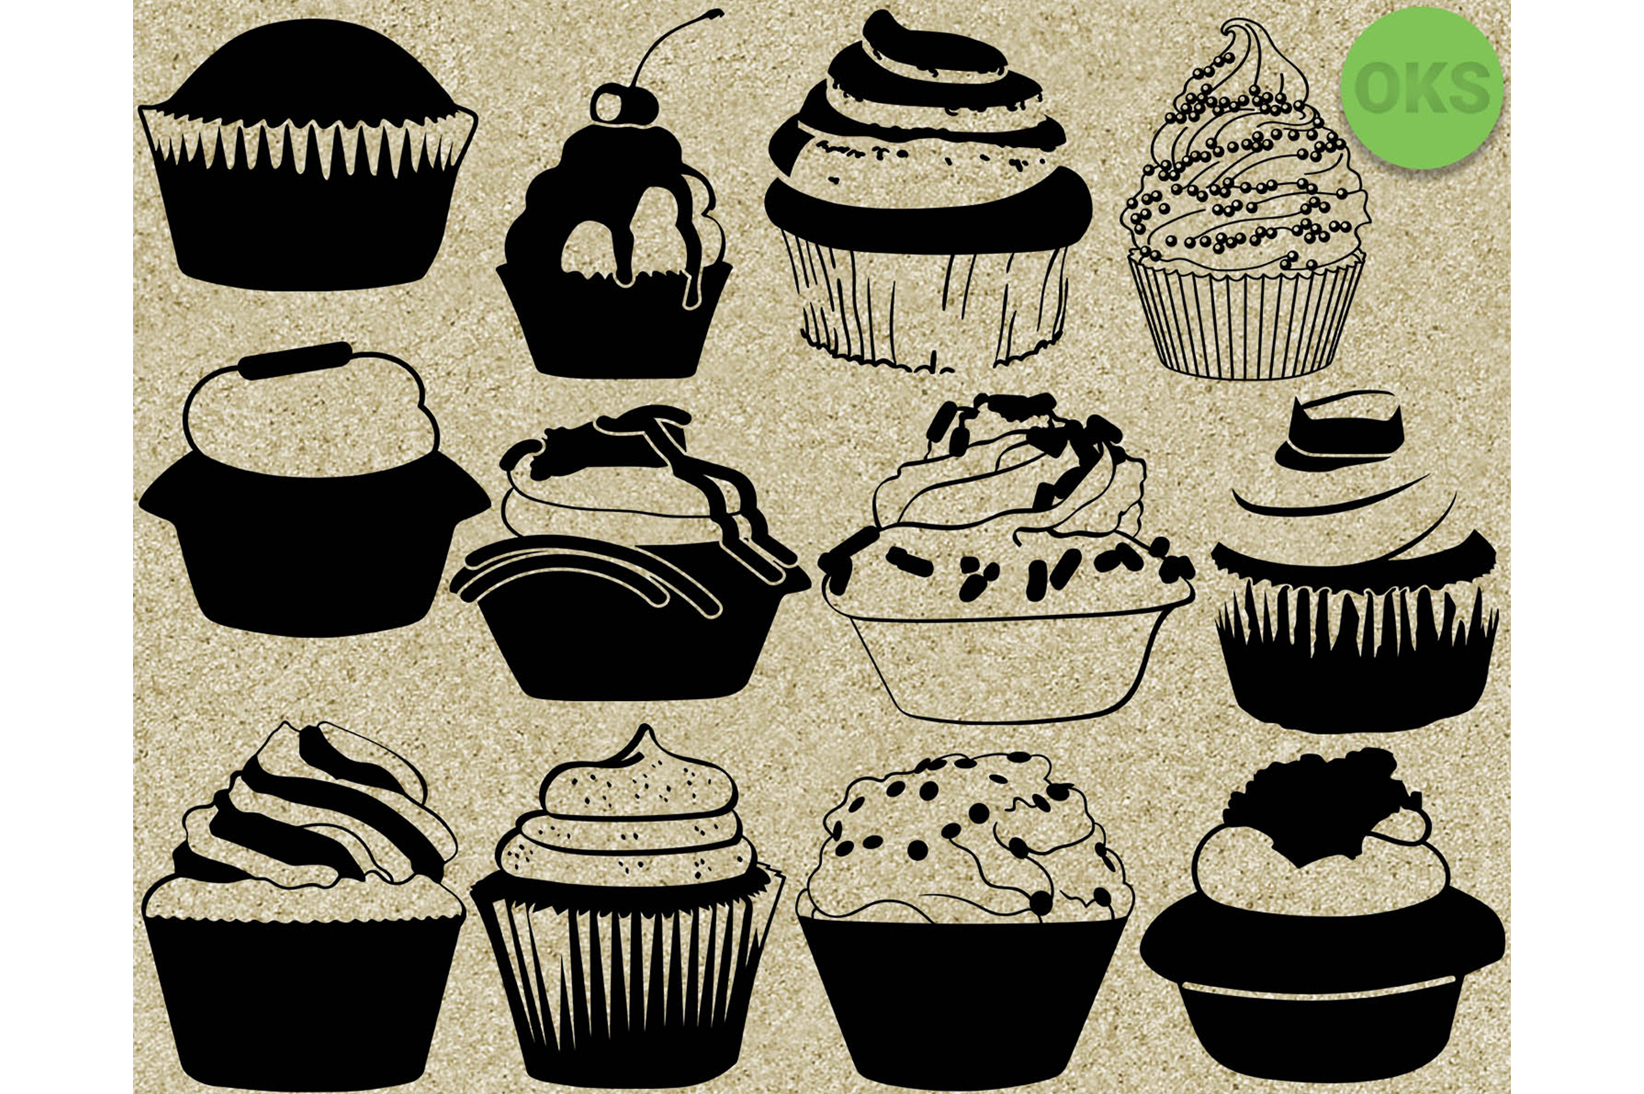 Download Free Cupcake Graphic By Crafteroks Creative Fabrica for Cricut Explore, Silhouette and other cutting machines.